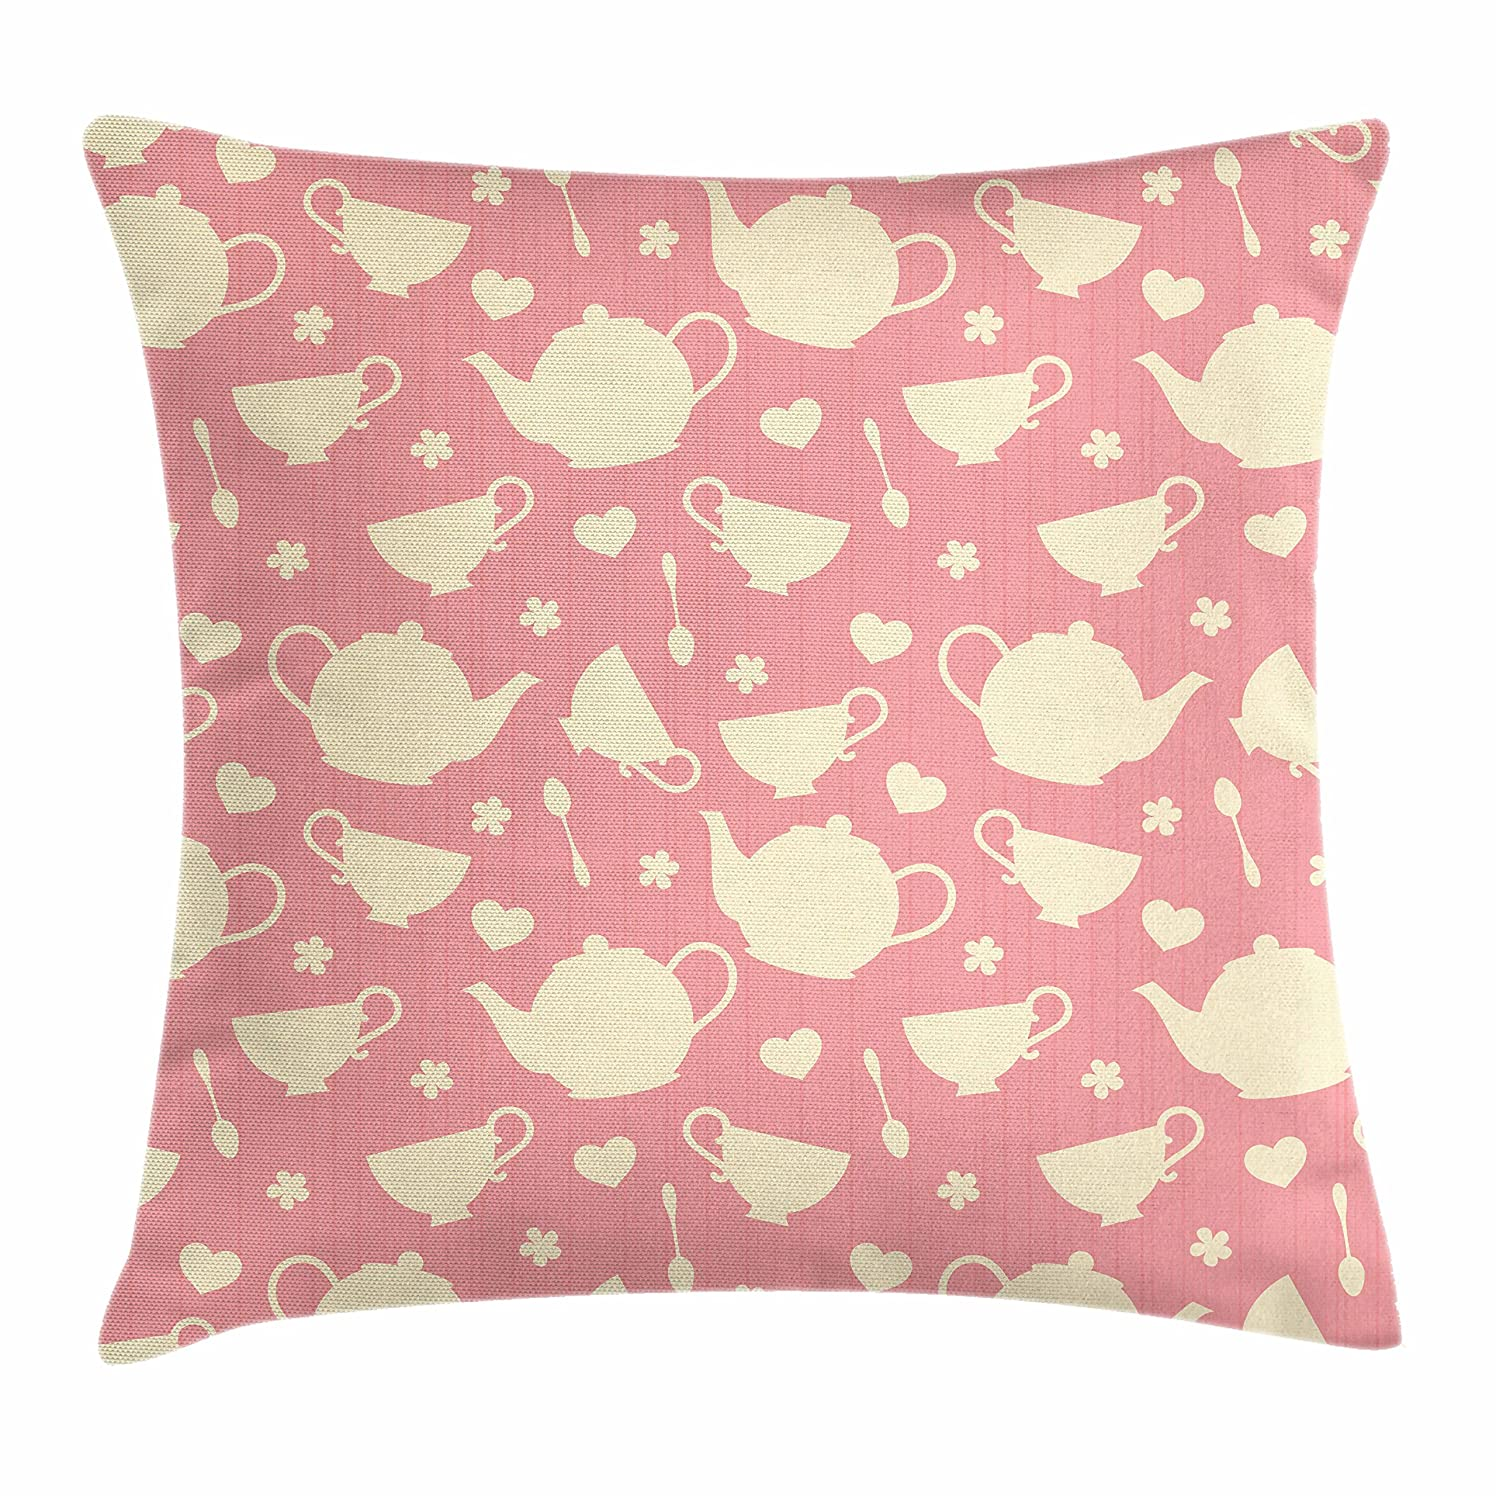 Ambesonne Tea Party Throw Pillow Cushion Cover, White Teapots with Cute Little Hearts and Flowers Illustration British Tradition, Decorative Square Accent Pillow Case, 28 X 28 Inches, Cream Coral